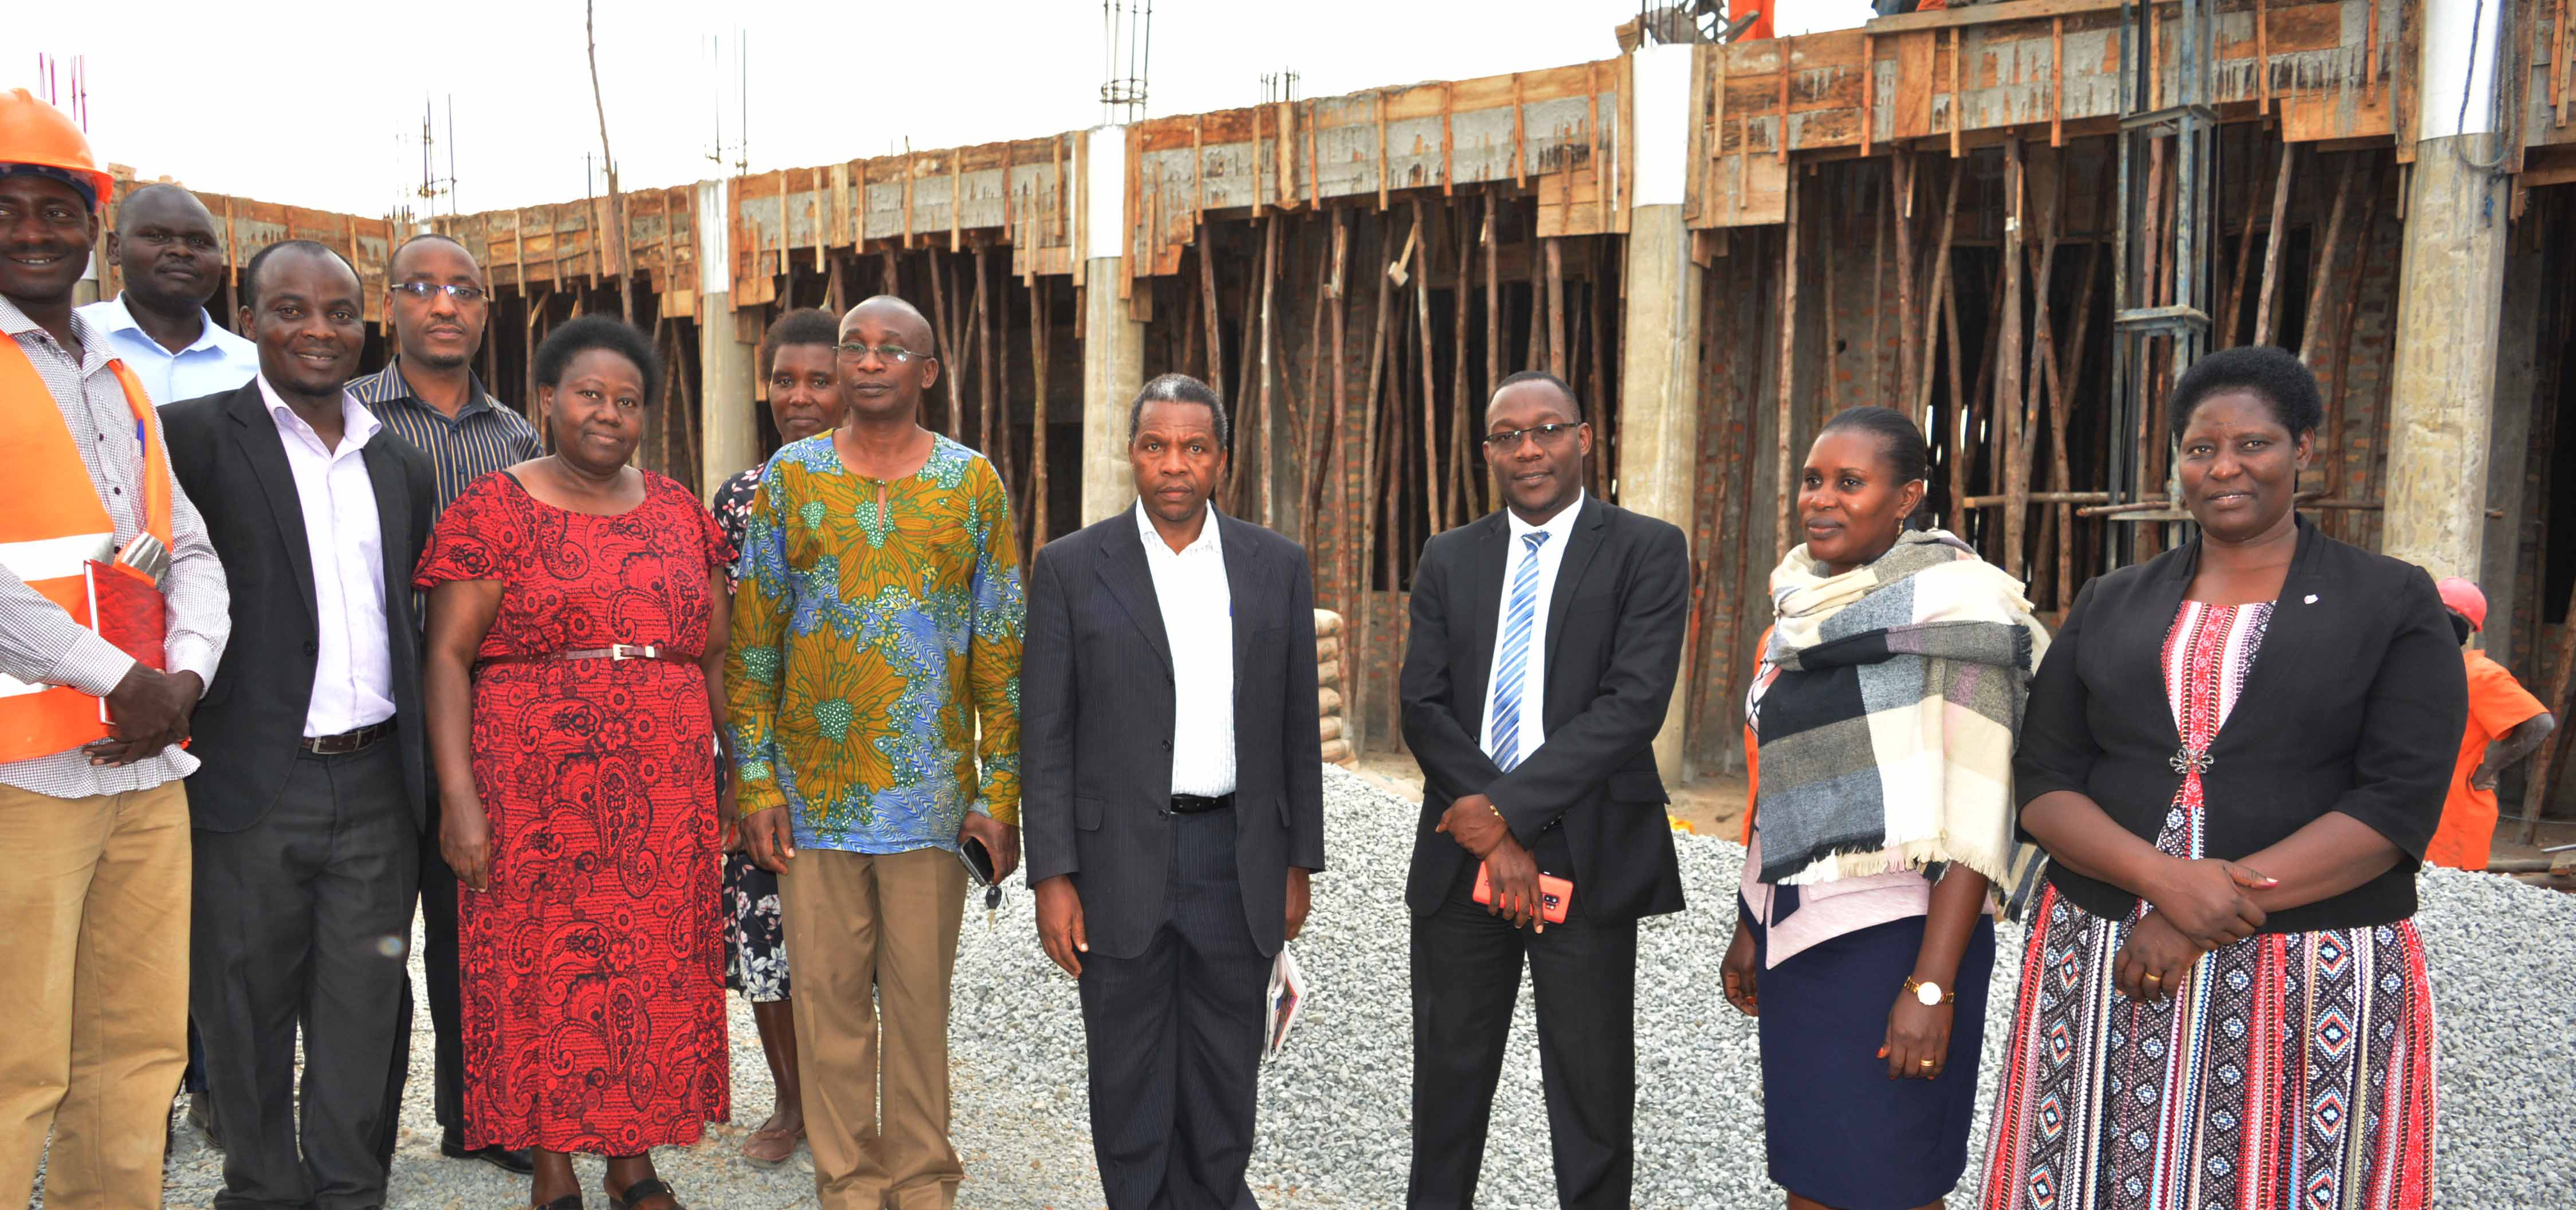 Ministry of Education and Sports officials posing for a photo with the university top management at the Science Laboratory construction site